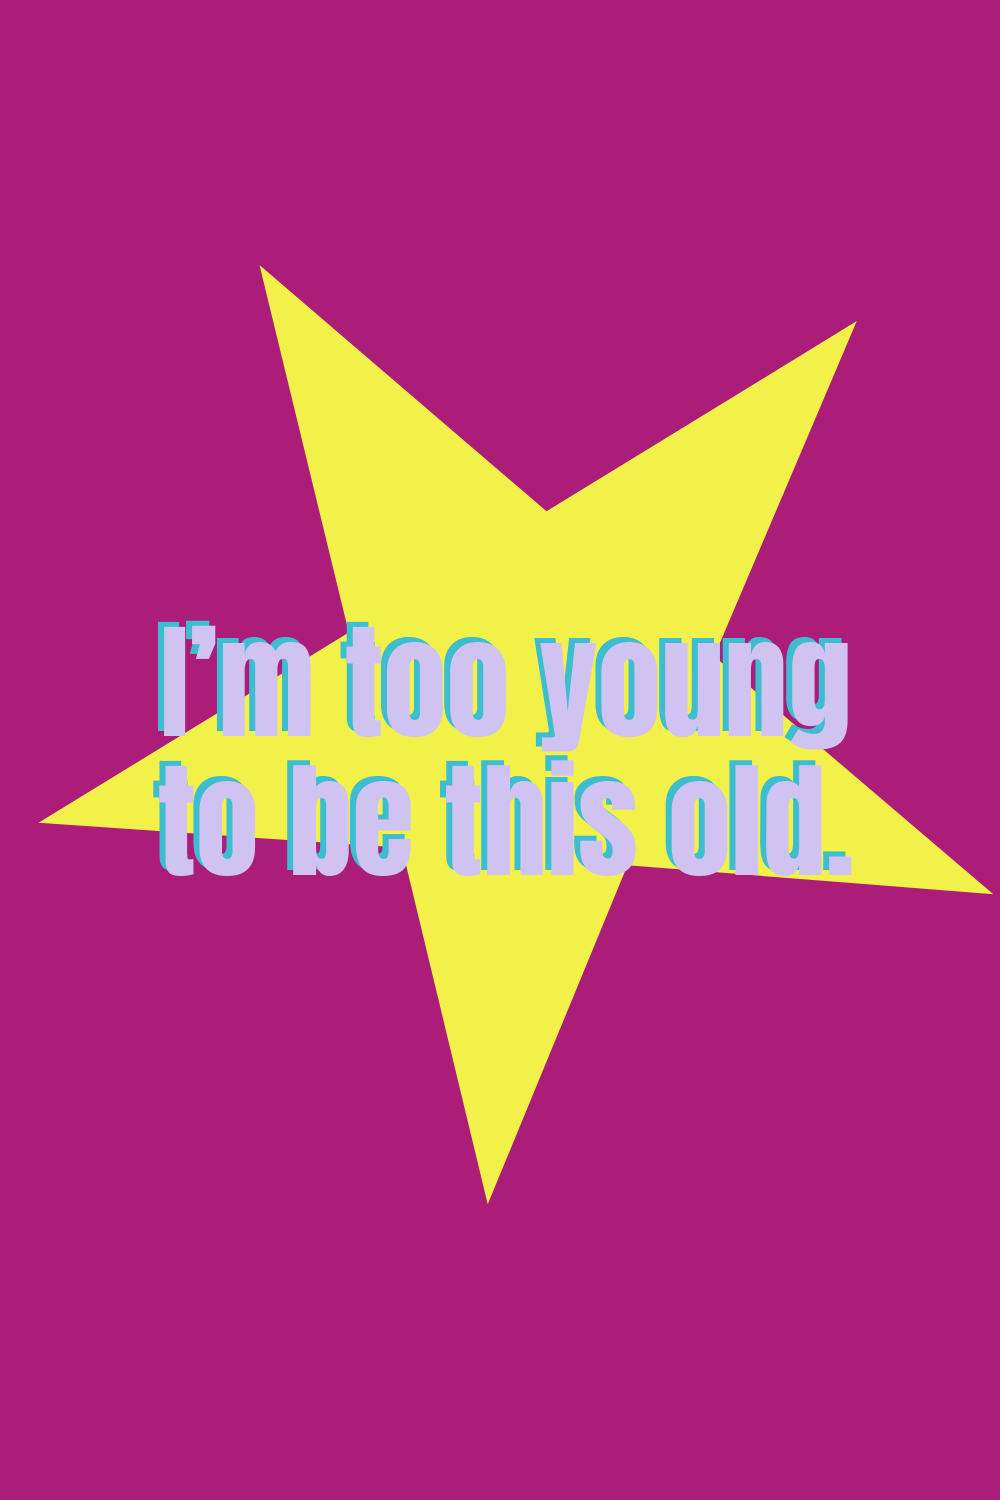 Funny Birthday quotes about being old